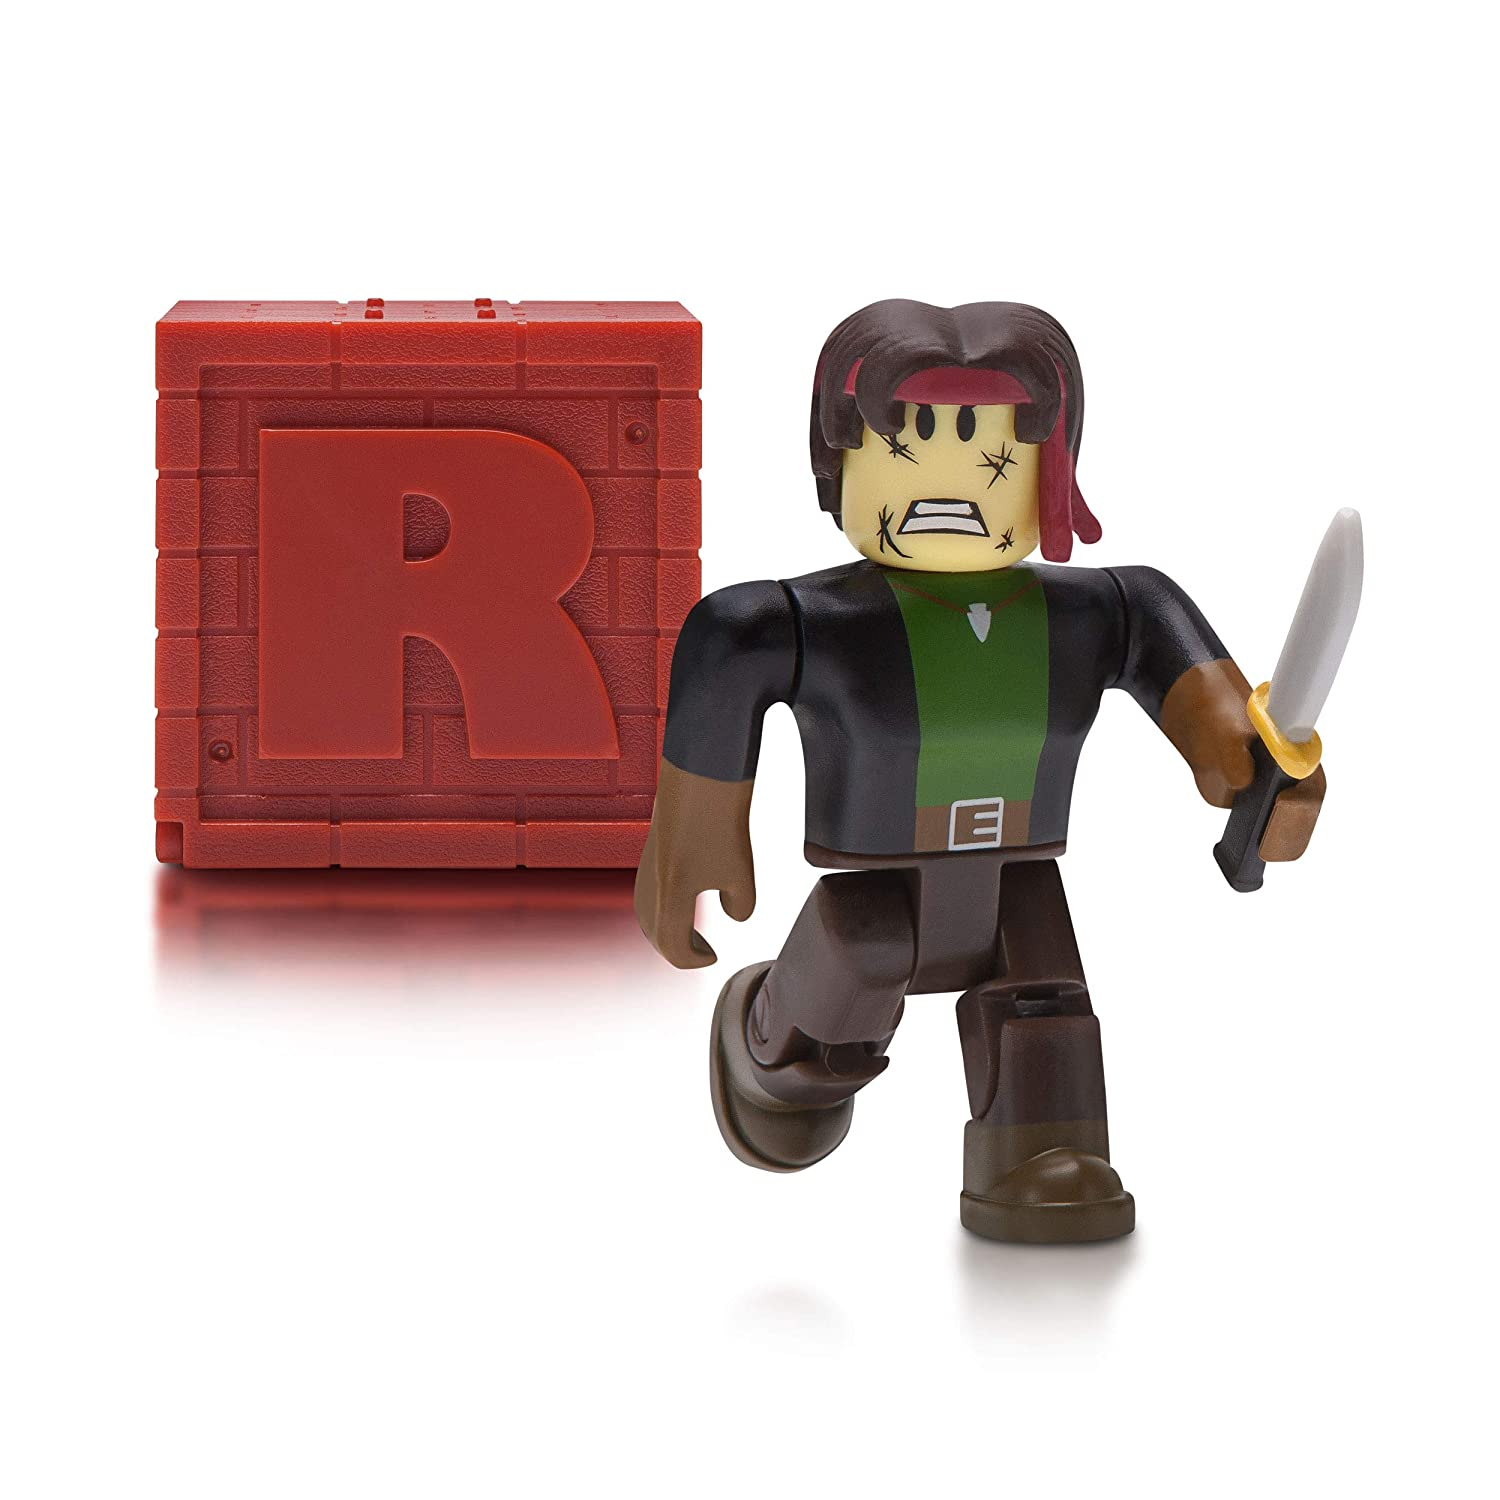 Roblox Mystery Figures Serie 4 - toy knife roblox